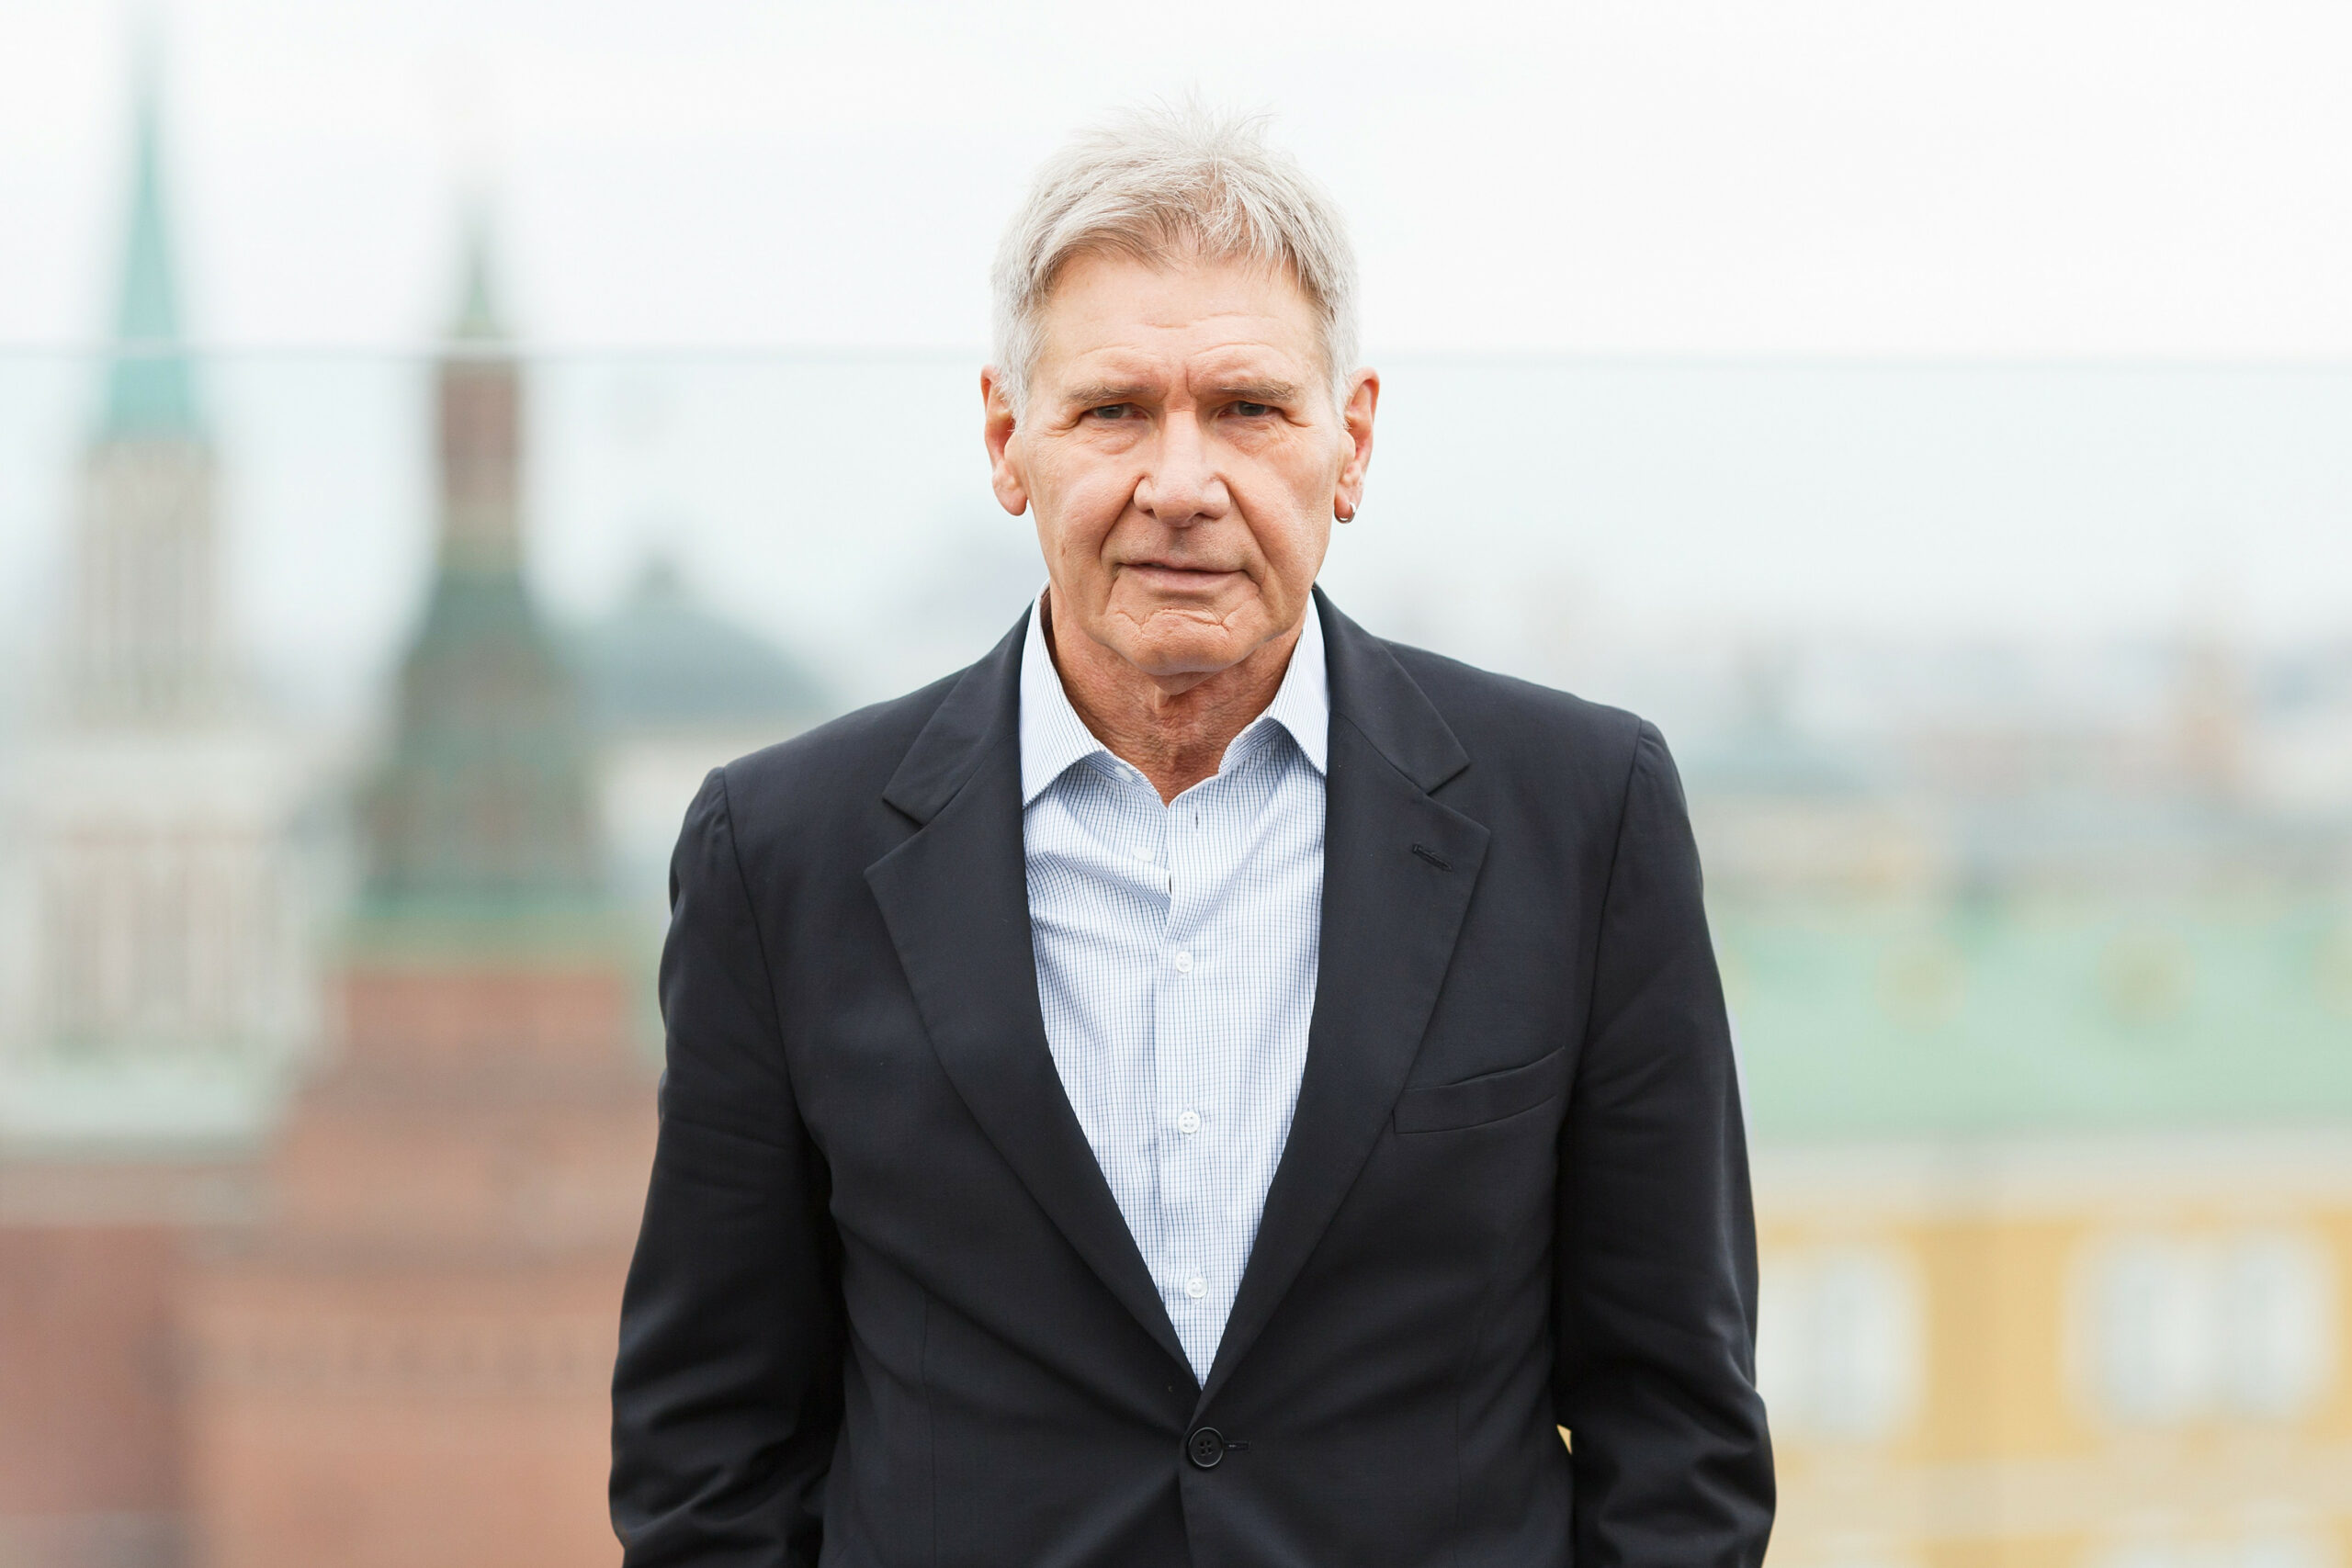 Harrison Ford Net Worth 10: How Much Is Harrison Worth Now? - ford net worth 2020